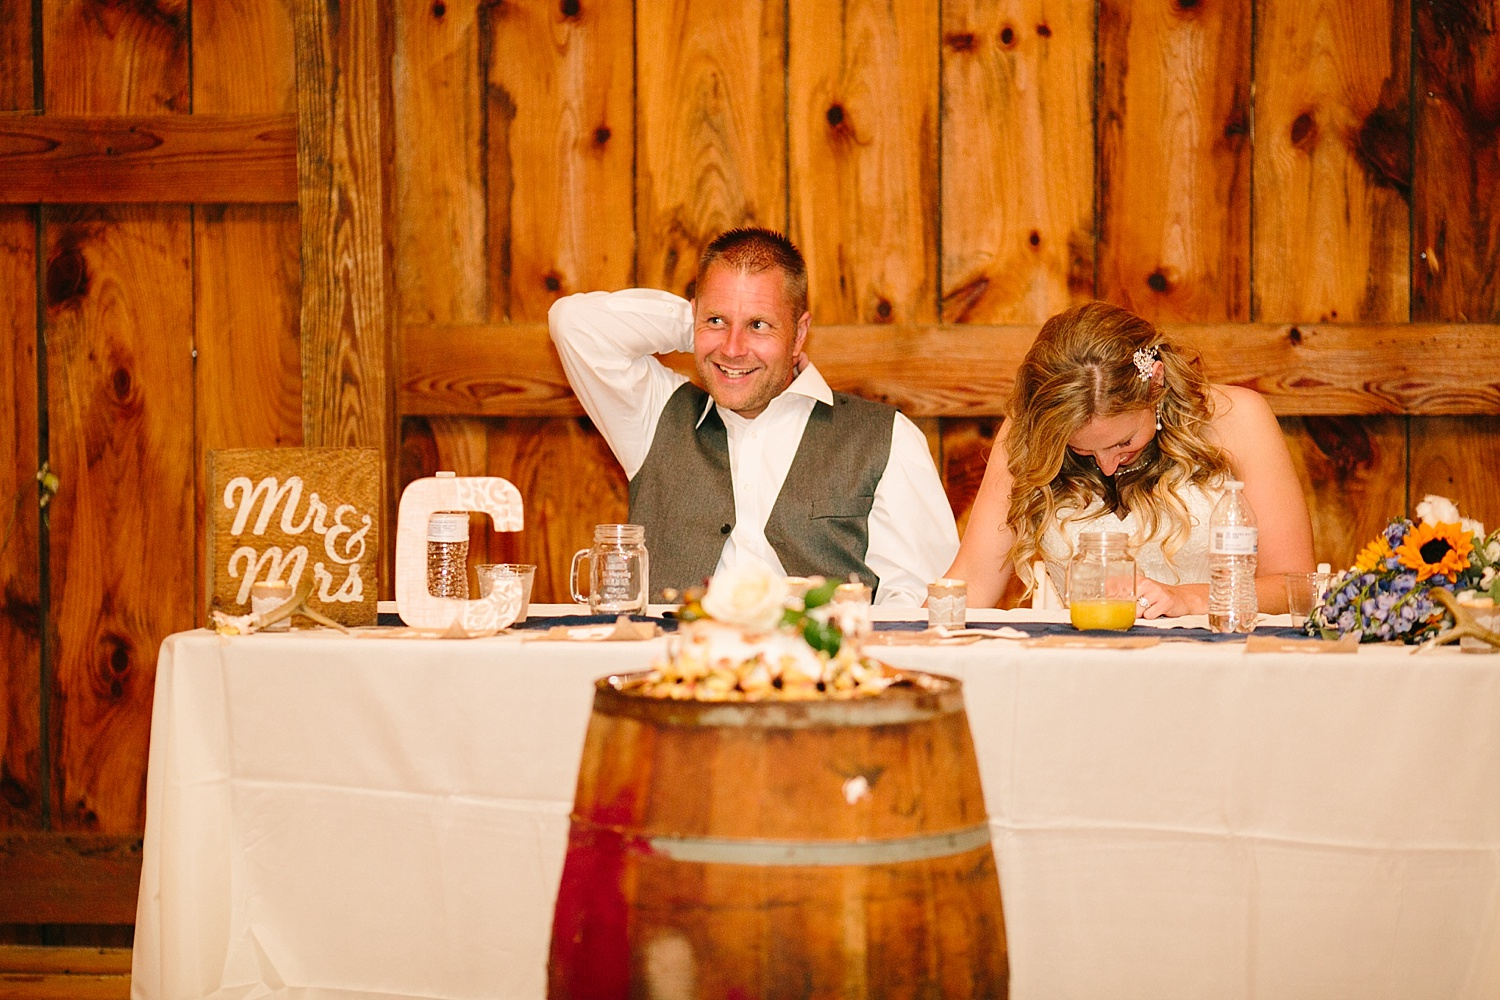 jennyryan_newbeginnings_farmstead_upstatenewyork_wedding_image135.jpg